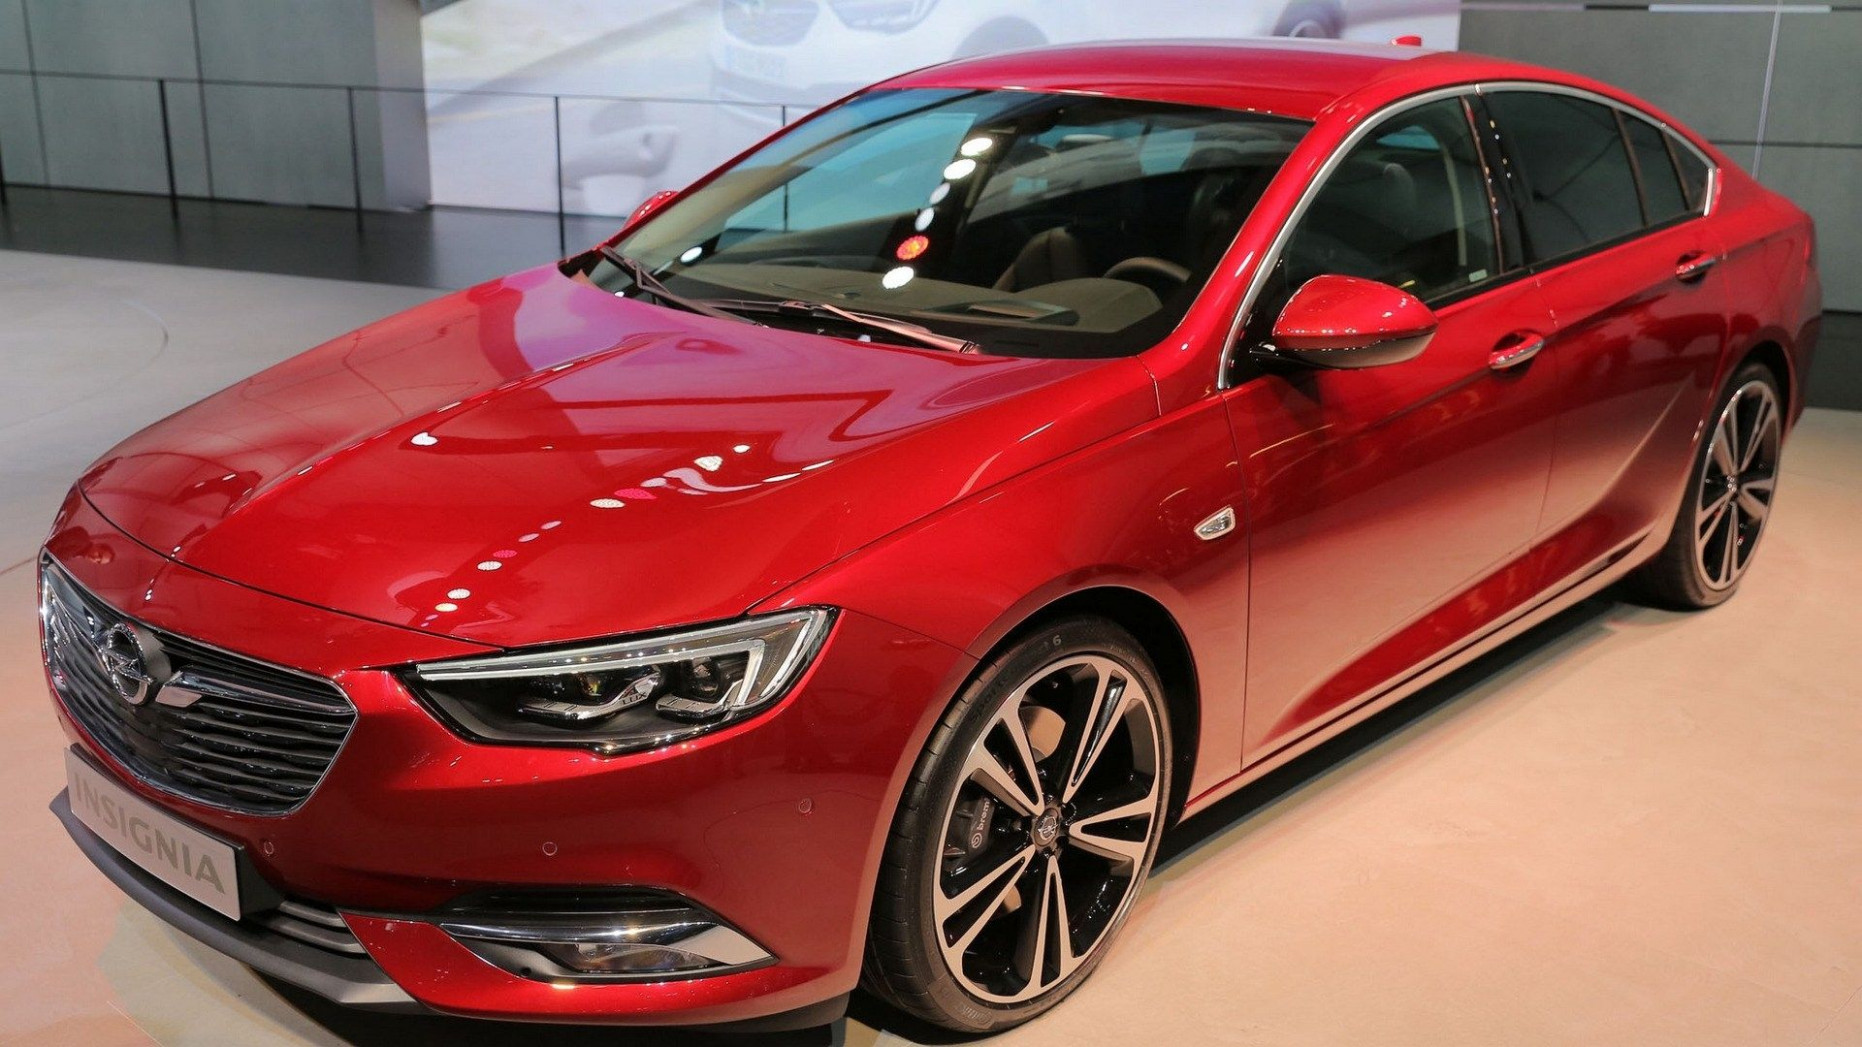 Opel Astra 11 Price In Egypt Concept   Opel, Car, Car pictures